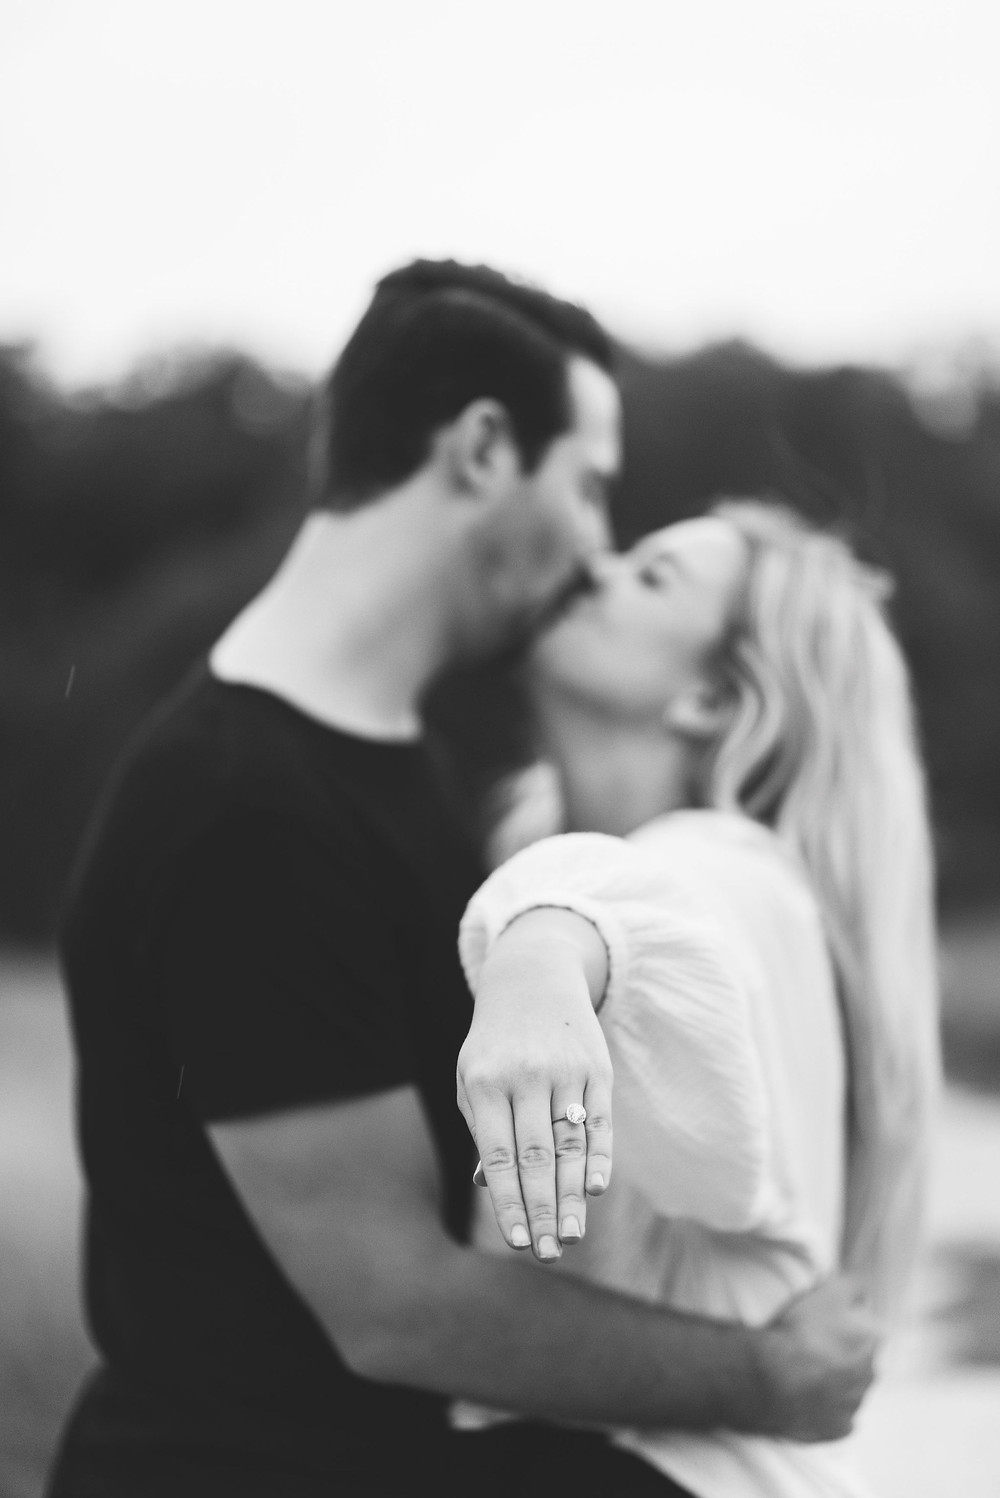 girl has her hand extended towards the camera to show off her new engagement ring, couple kisses in the background out of focus